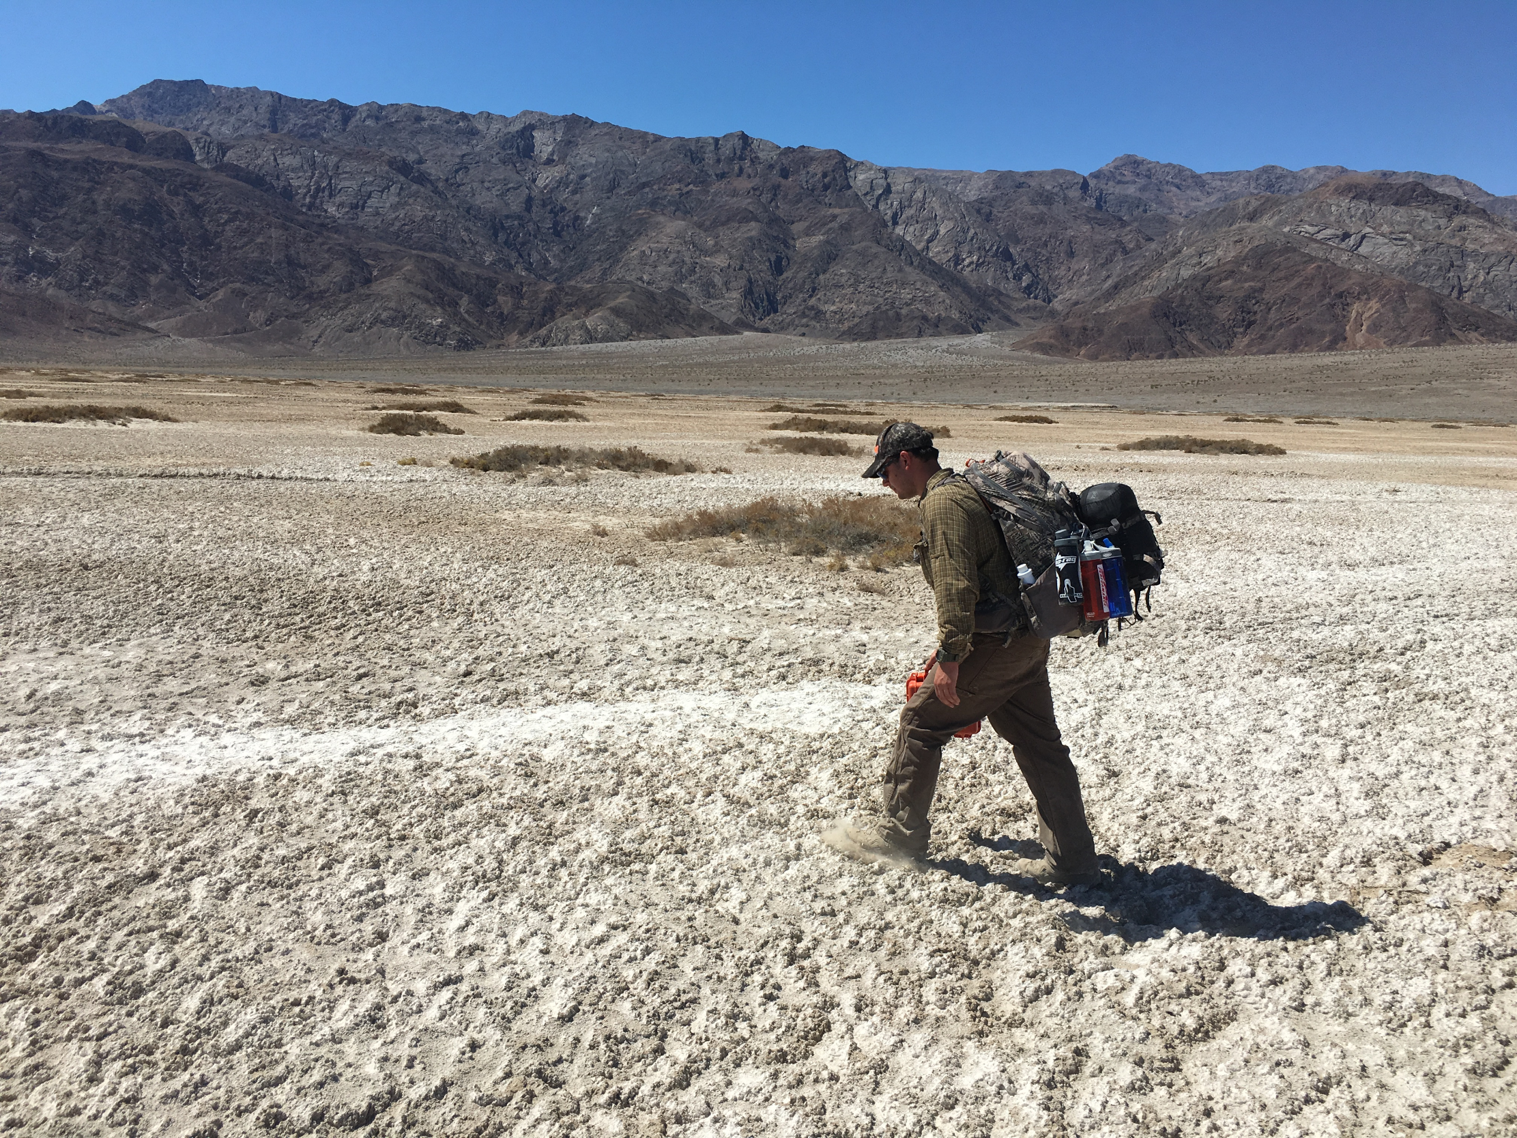 Arizona Coop Unit student walking across the floor of Death Valley on the way to sample a remote desert spring.